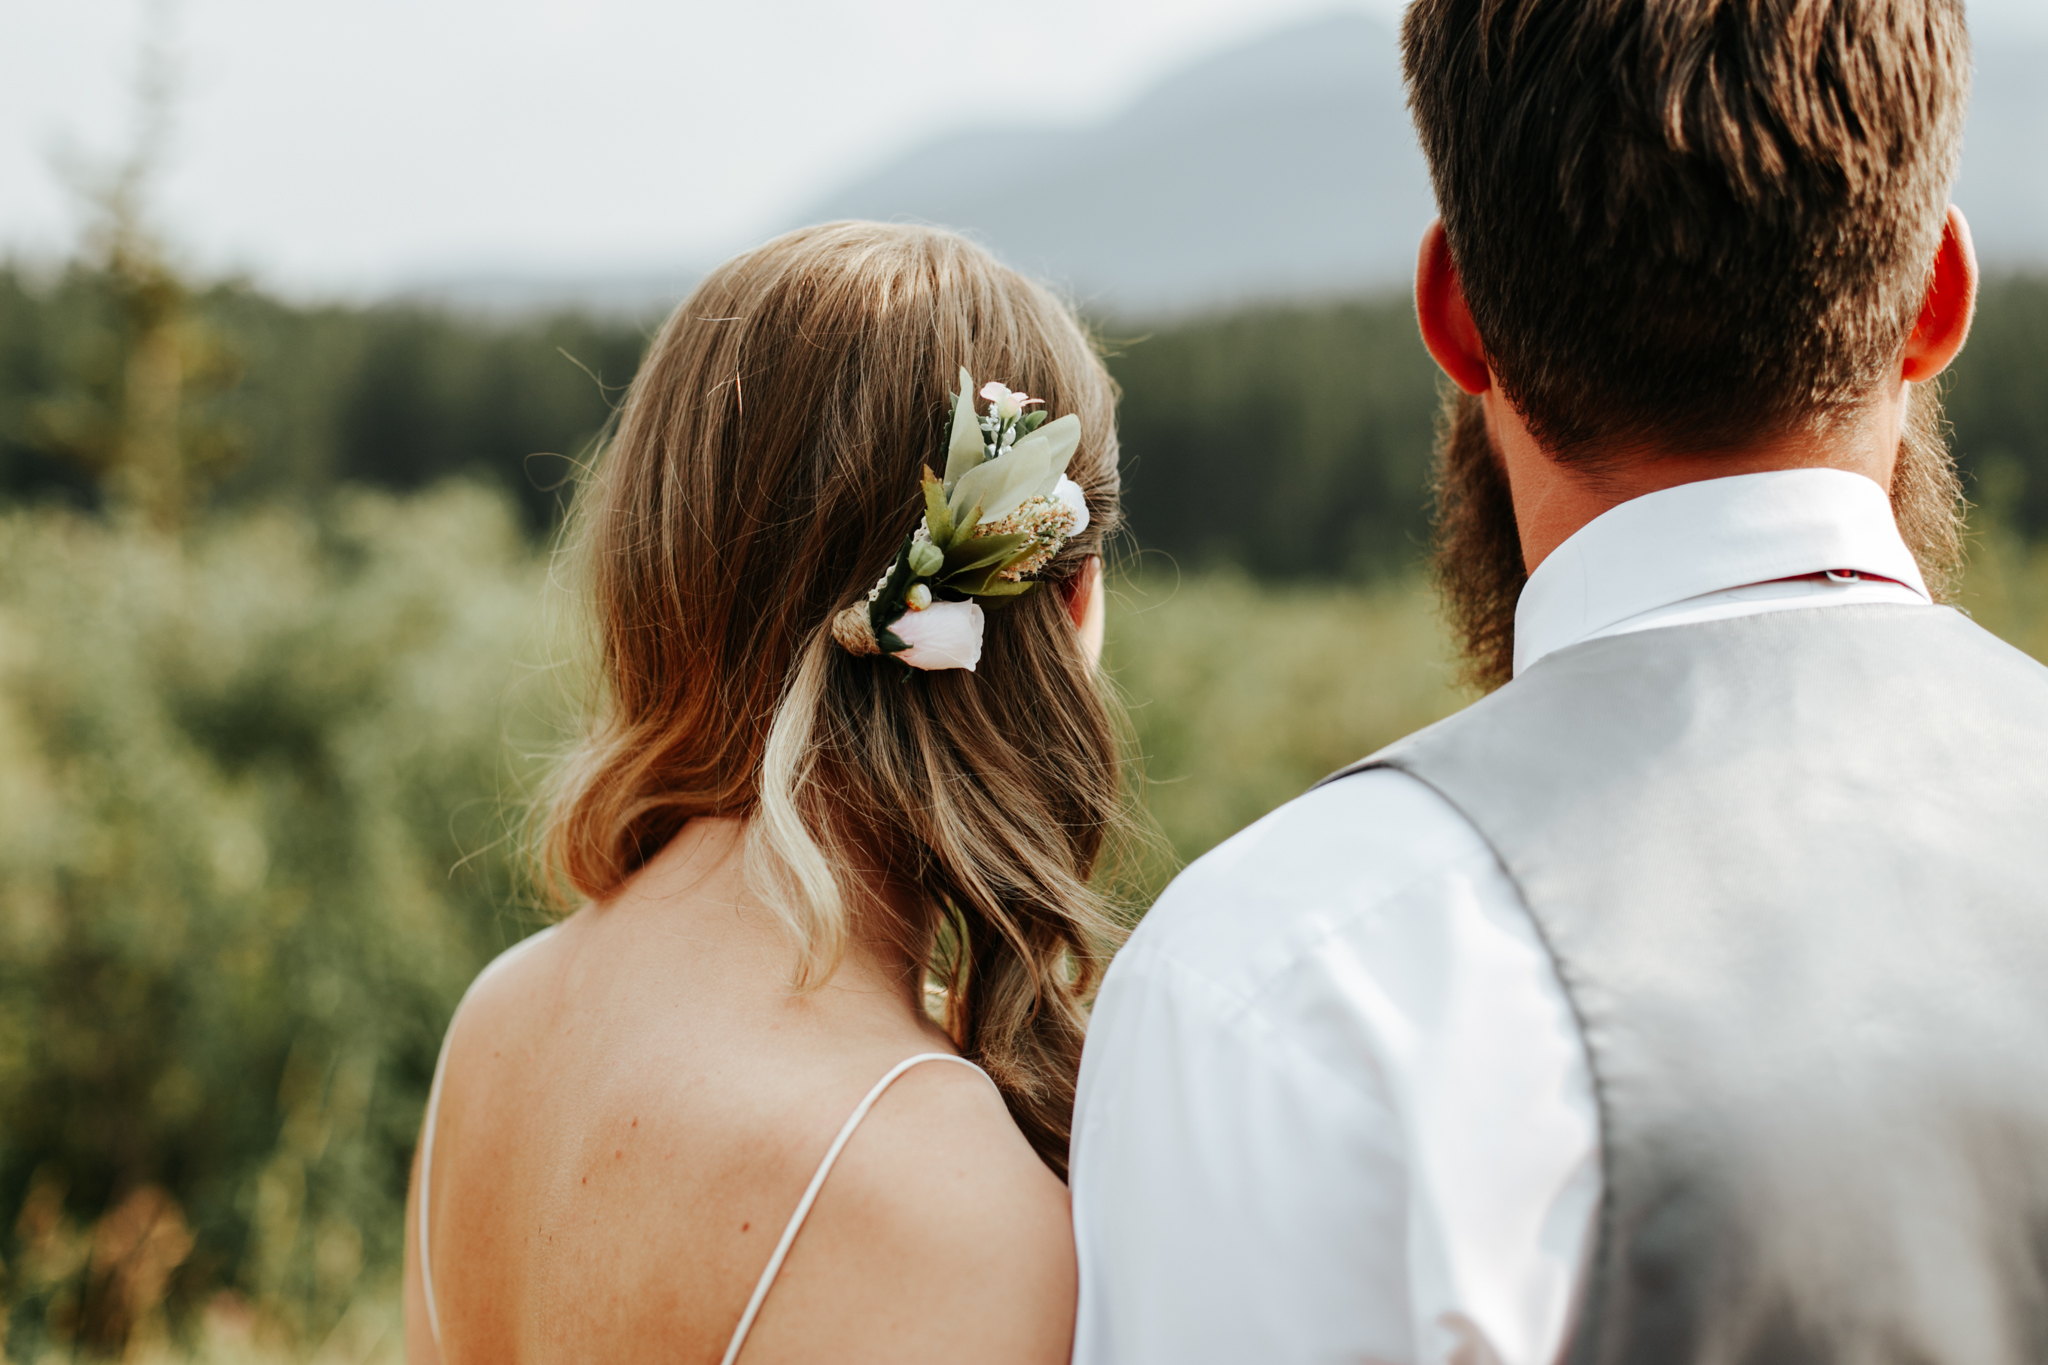 castle-mountain-wedding-photographer-love-and-be-loved-photography-lethbridge-pincher-creek-crowsnest-pass-yannick-rylee-photo-image-picture-155165.jpg